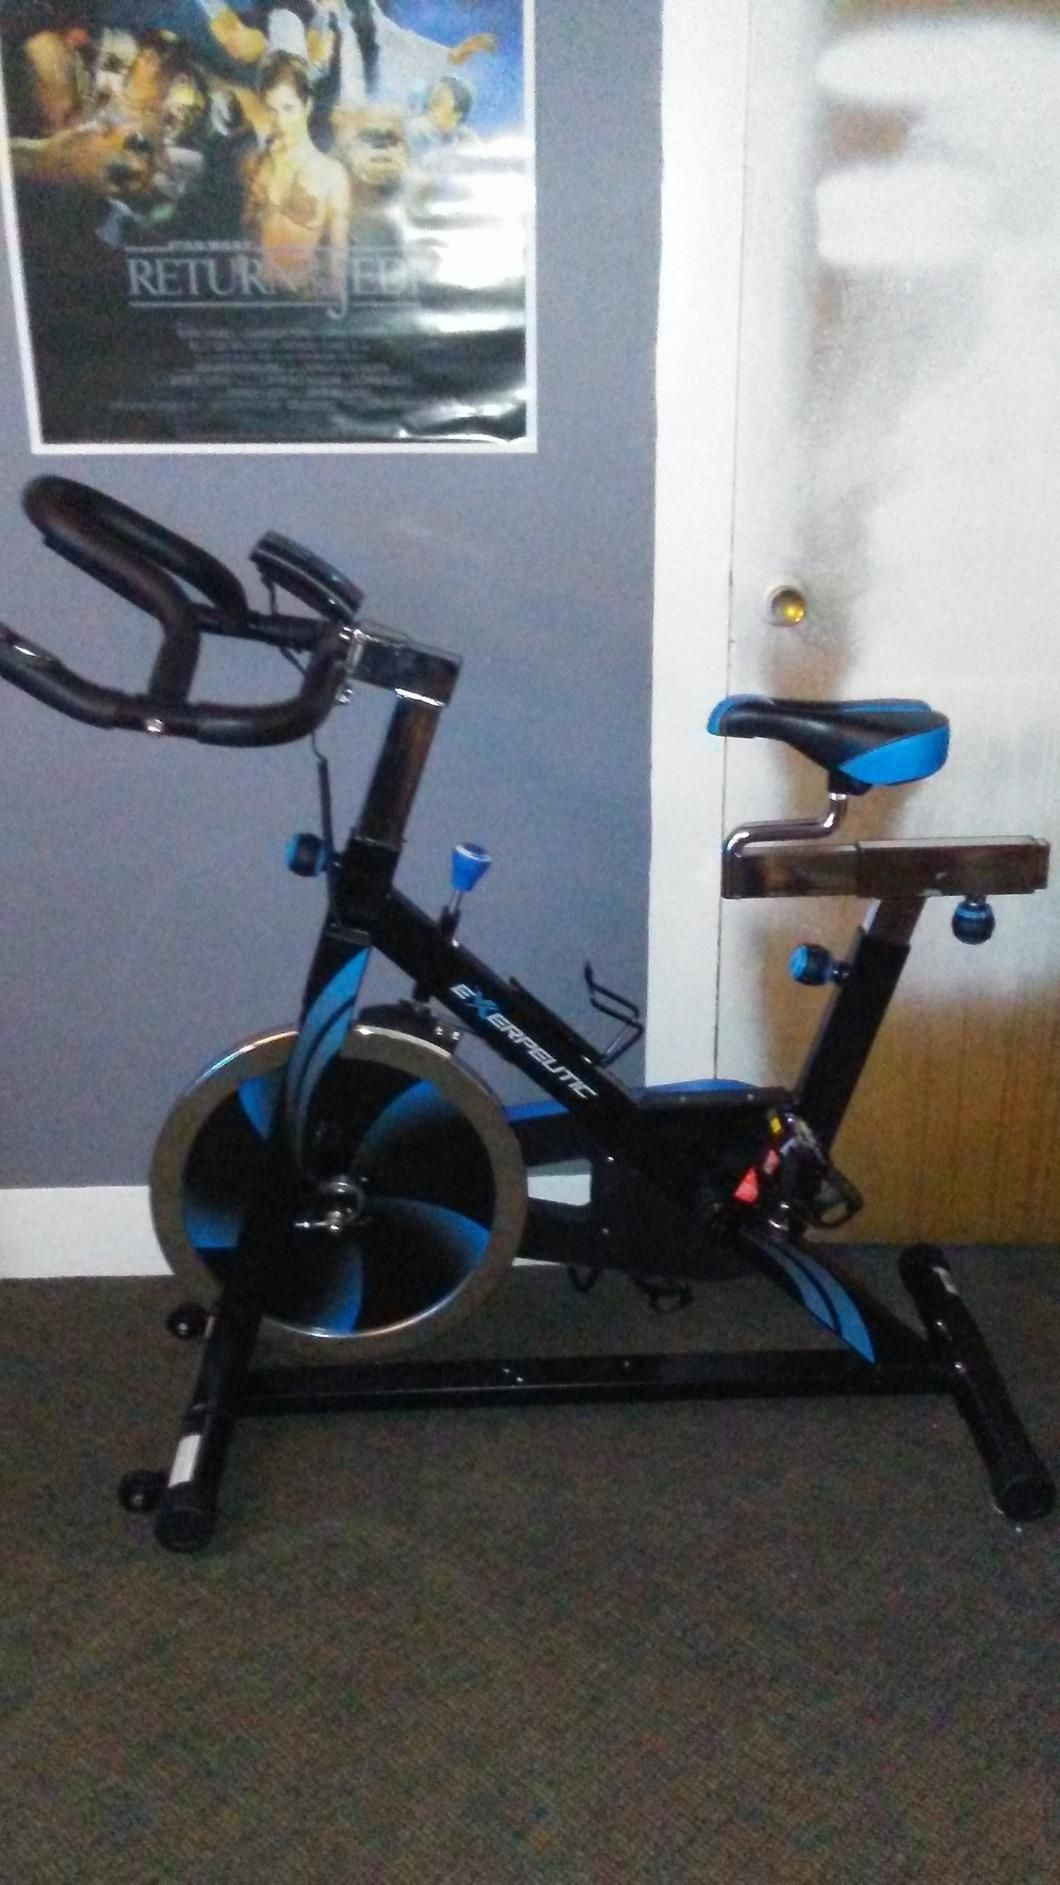 Best Spin Bike Reviews In 2020 Spin Bike Reviews Spin Bikes Bike Reviews